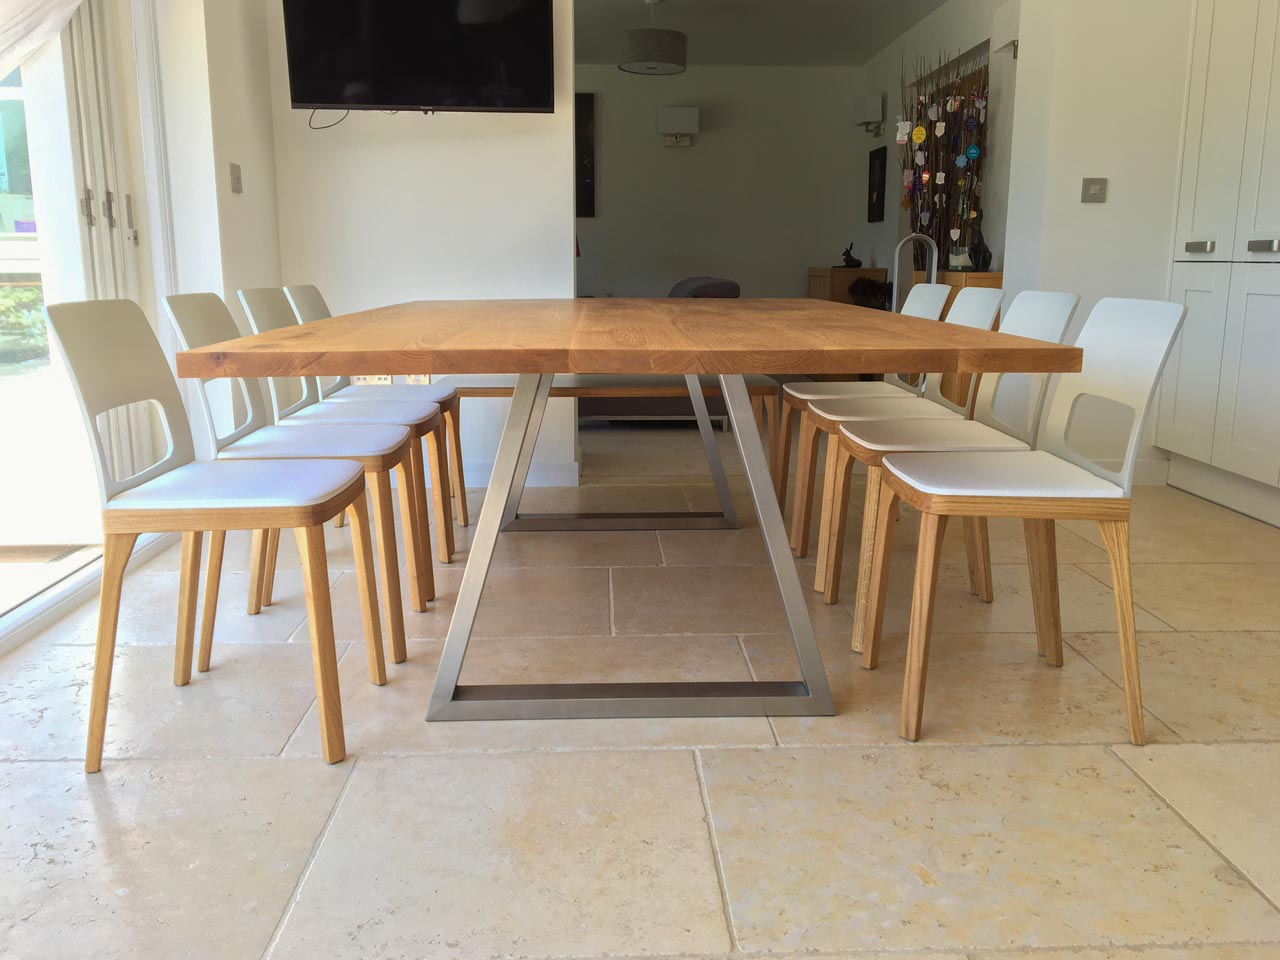 abacus-tables-project-958-pic-3